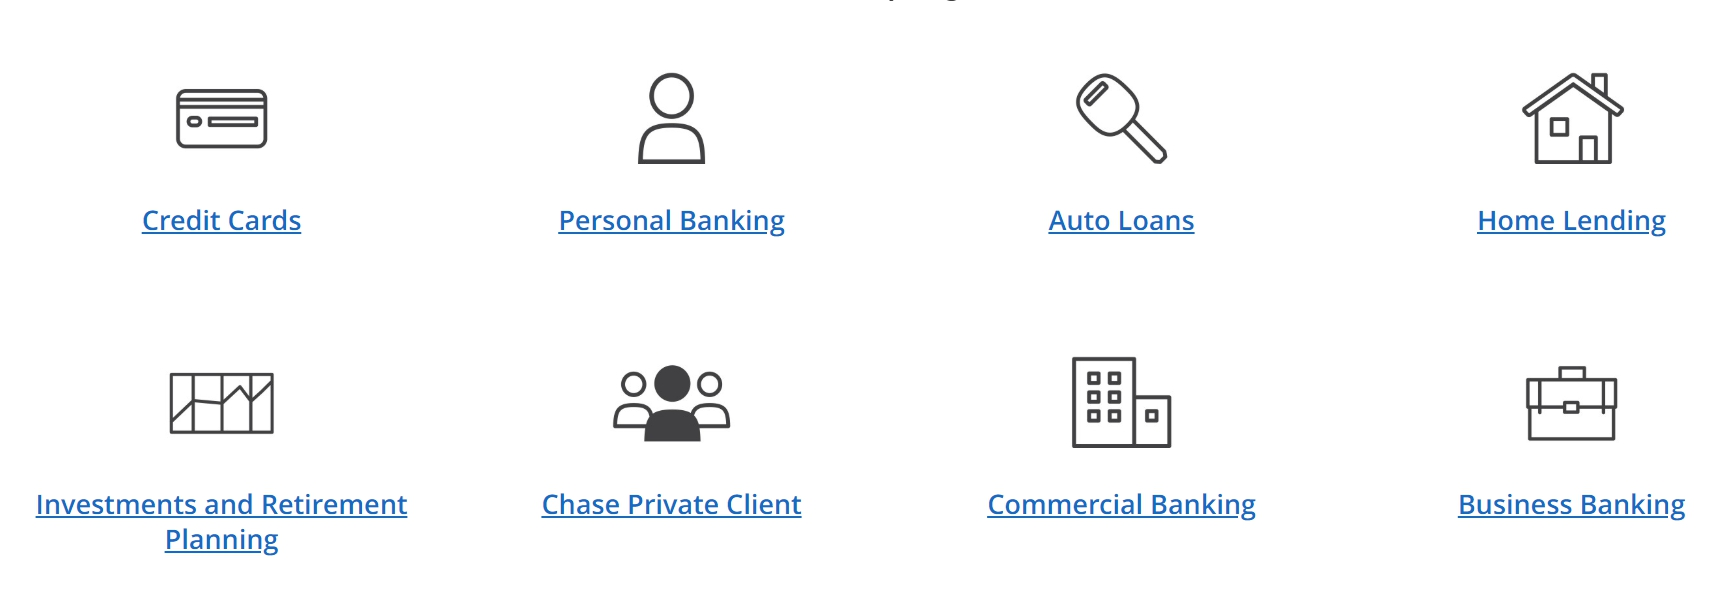 Chase Bank Near You - 2519 Locations & Reviews June 2020  COMPACOM – Compare Companies Online